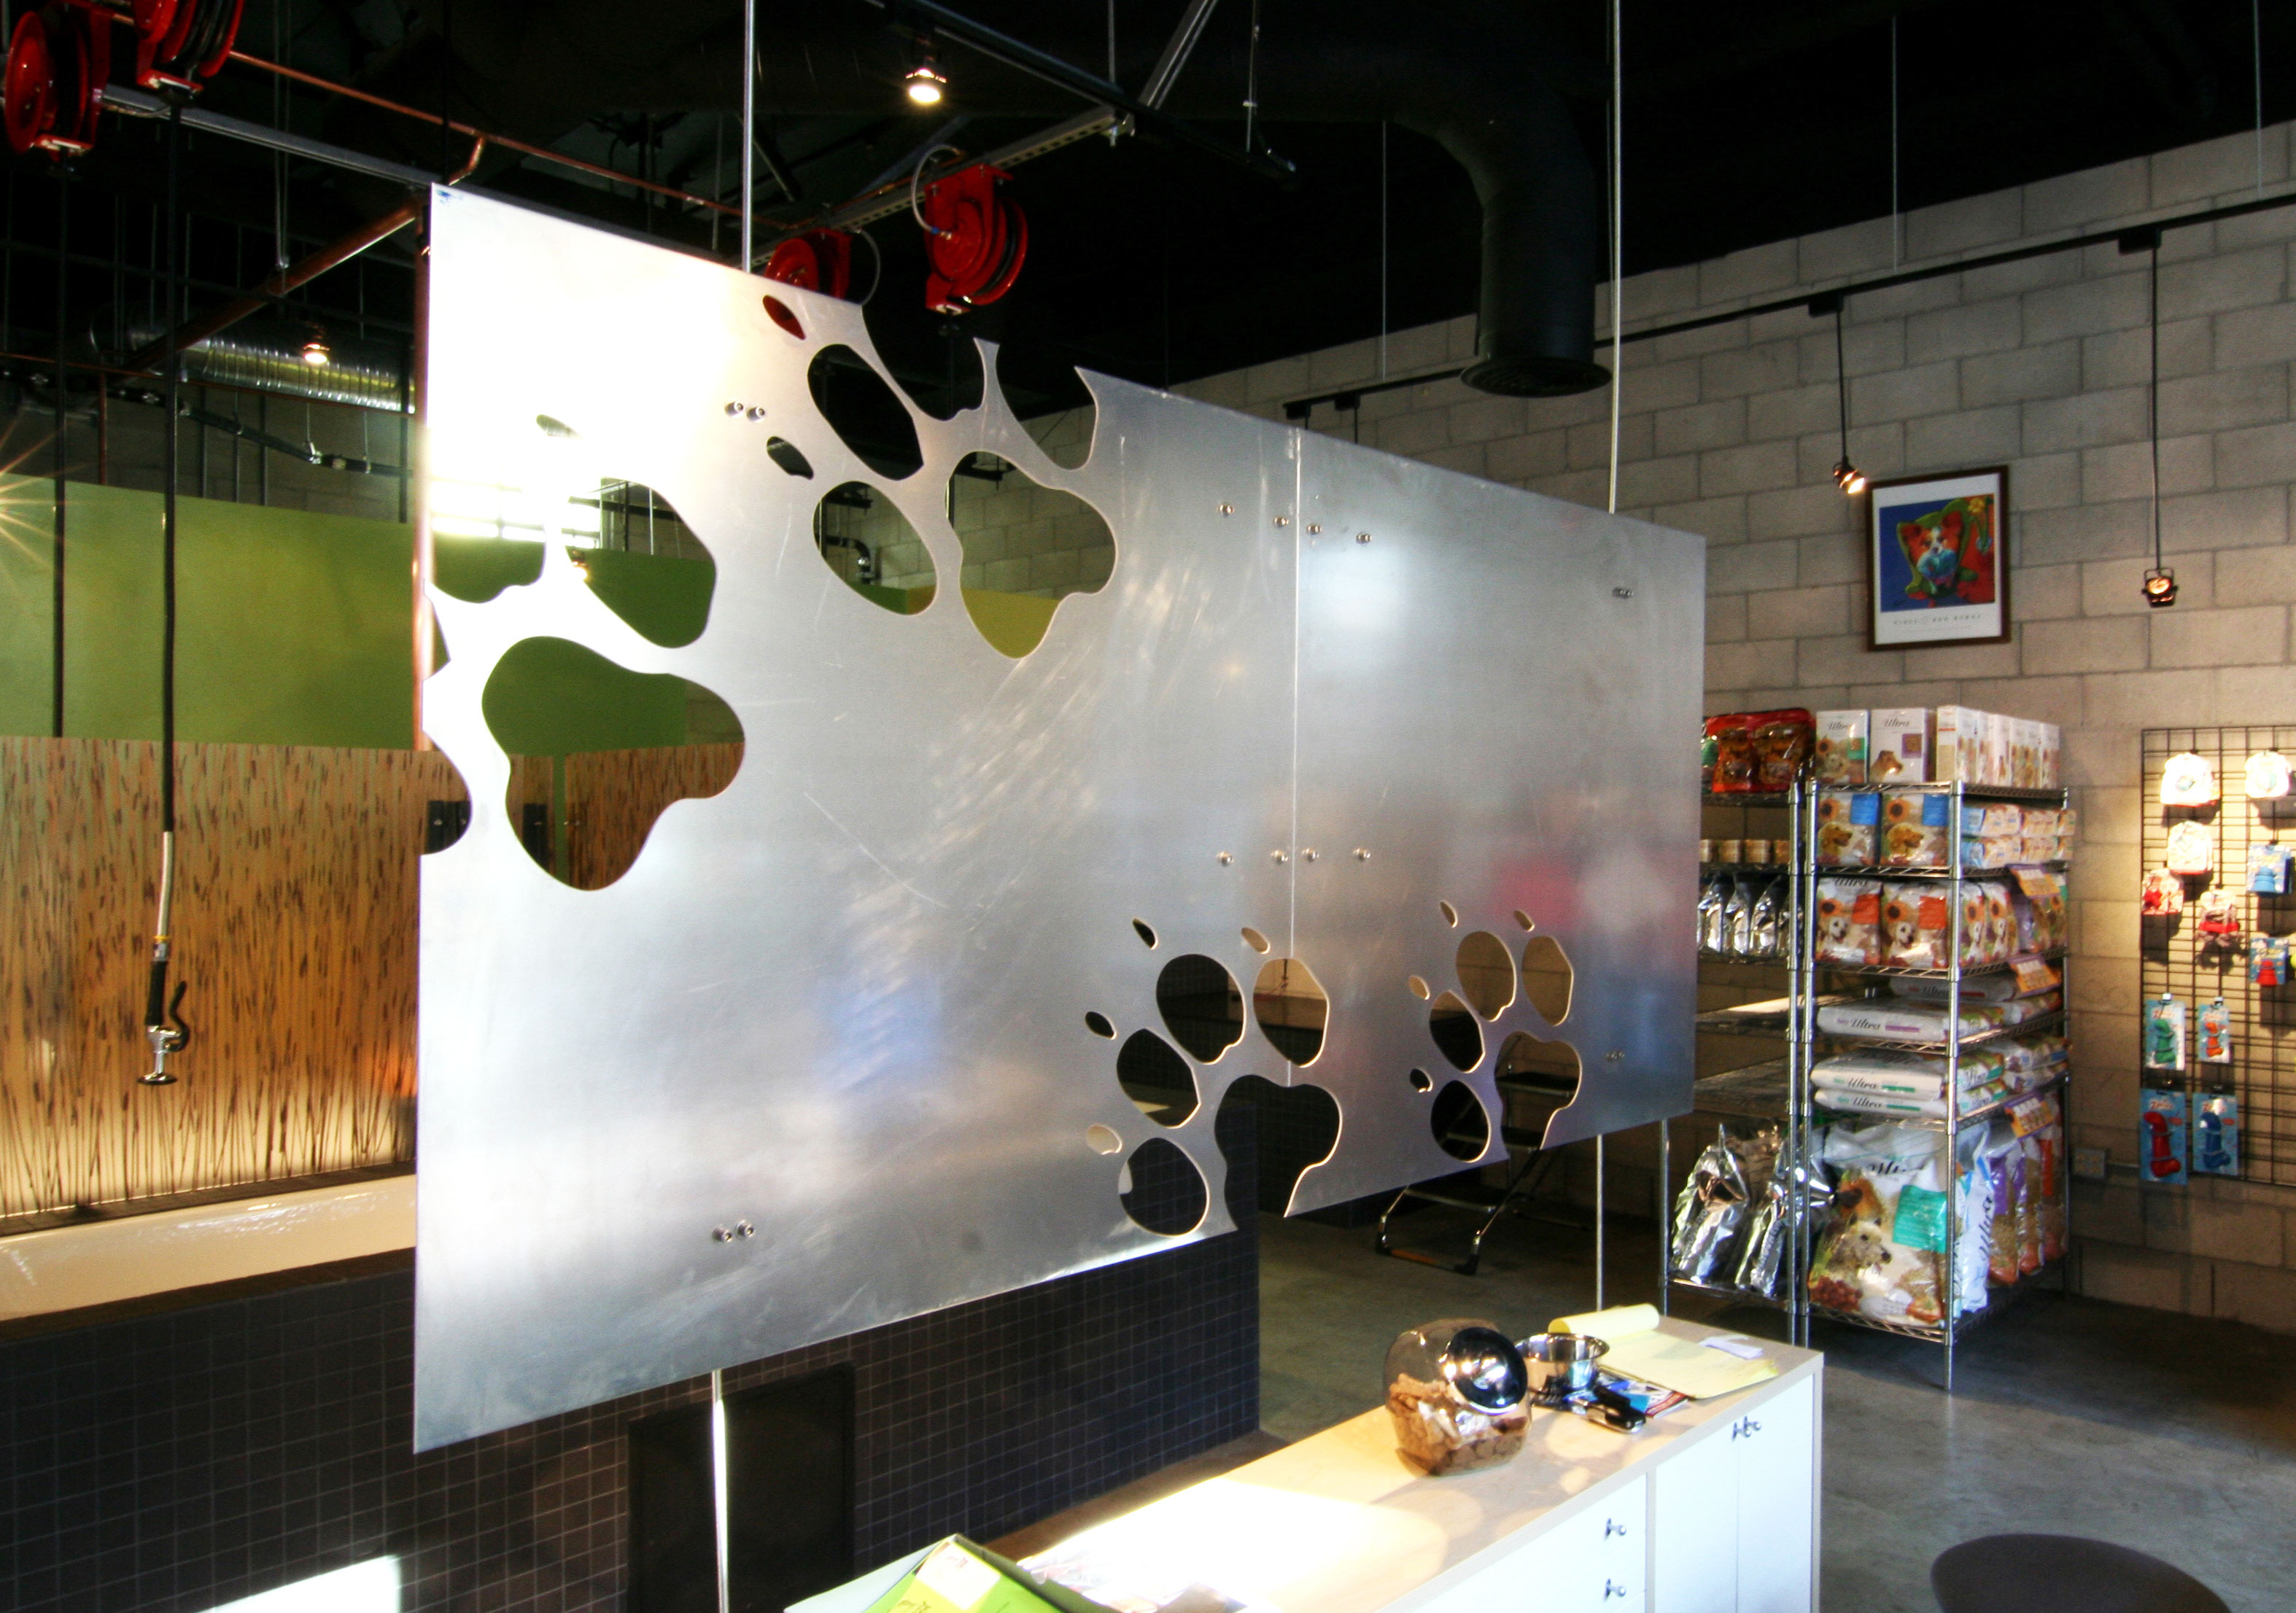 Studio anderson architects city dog wash 3148 2212 for Anderson architects